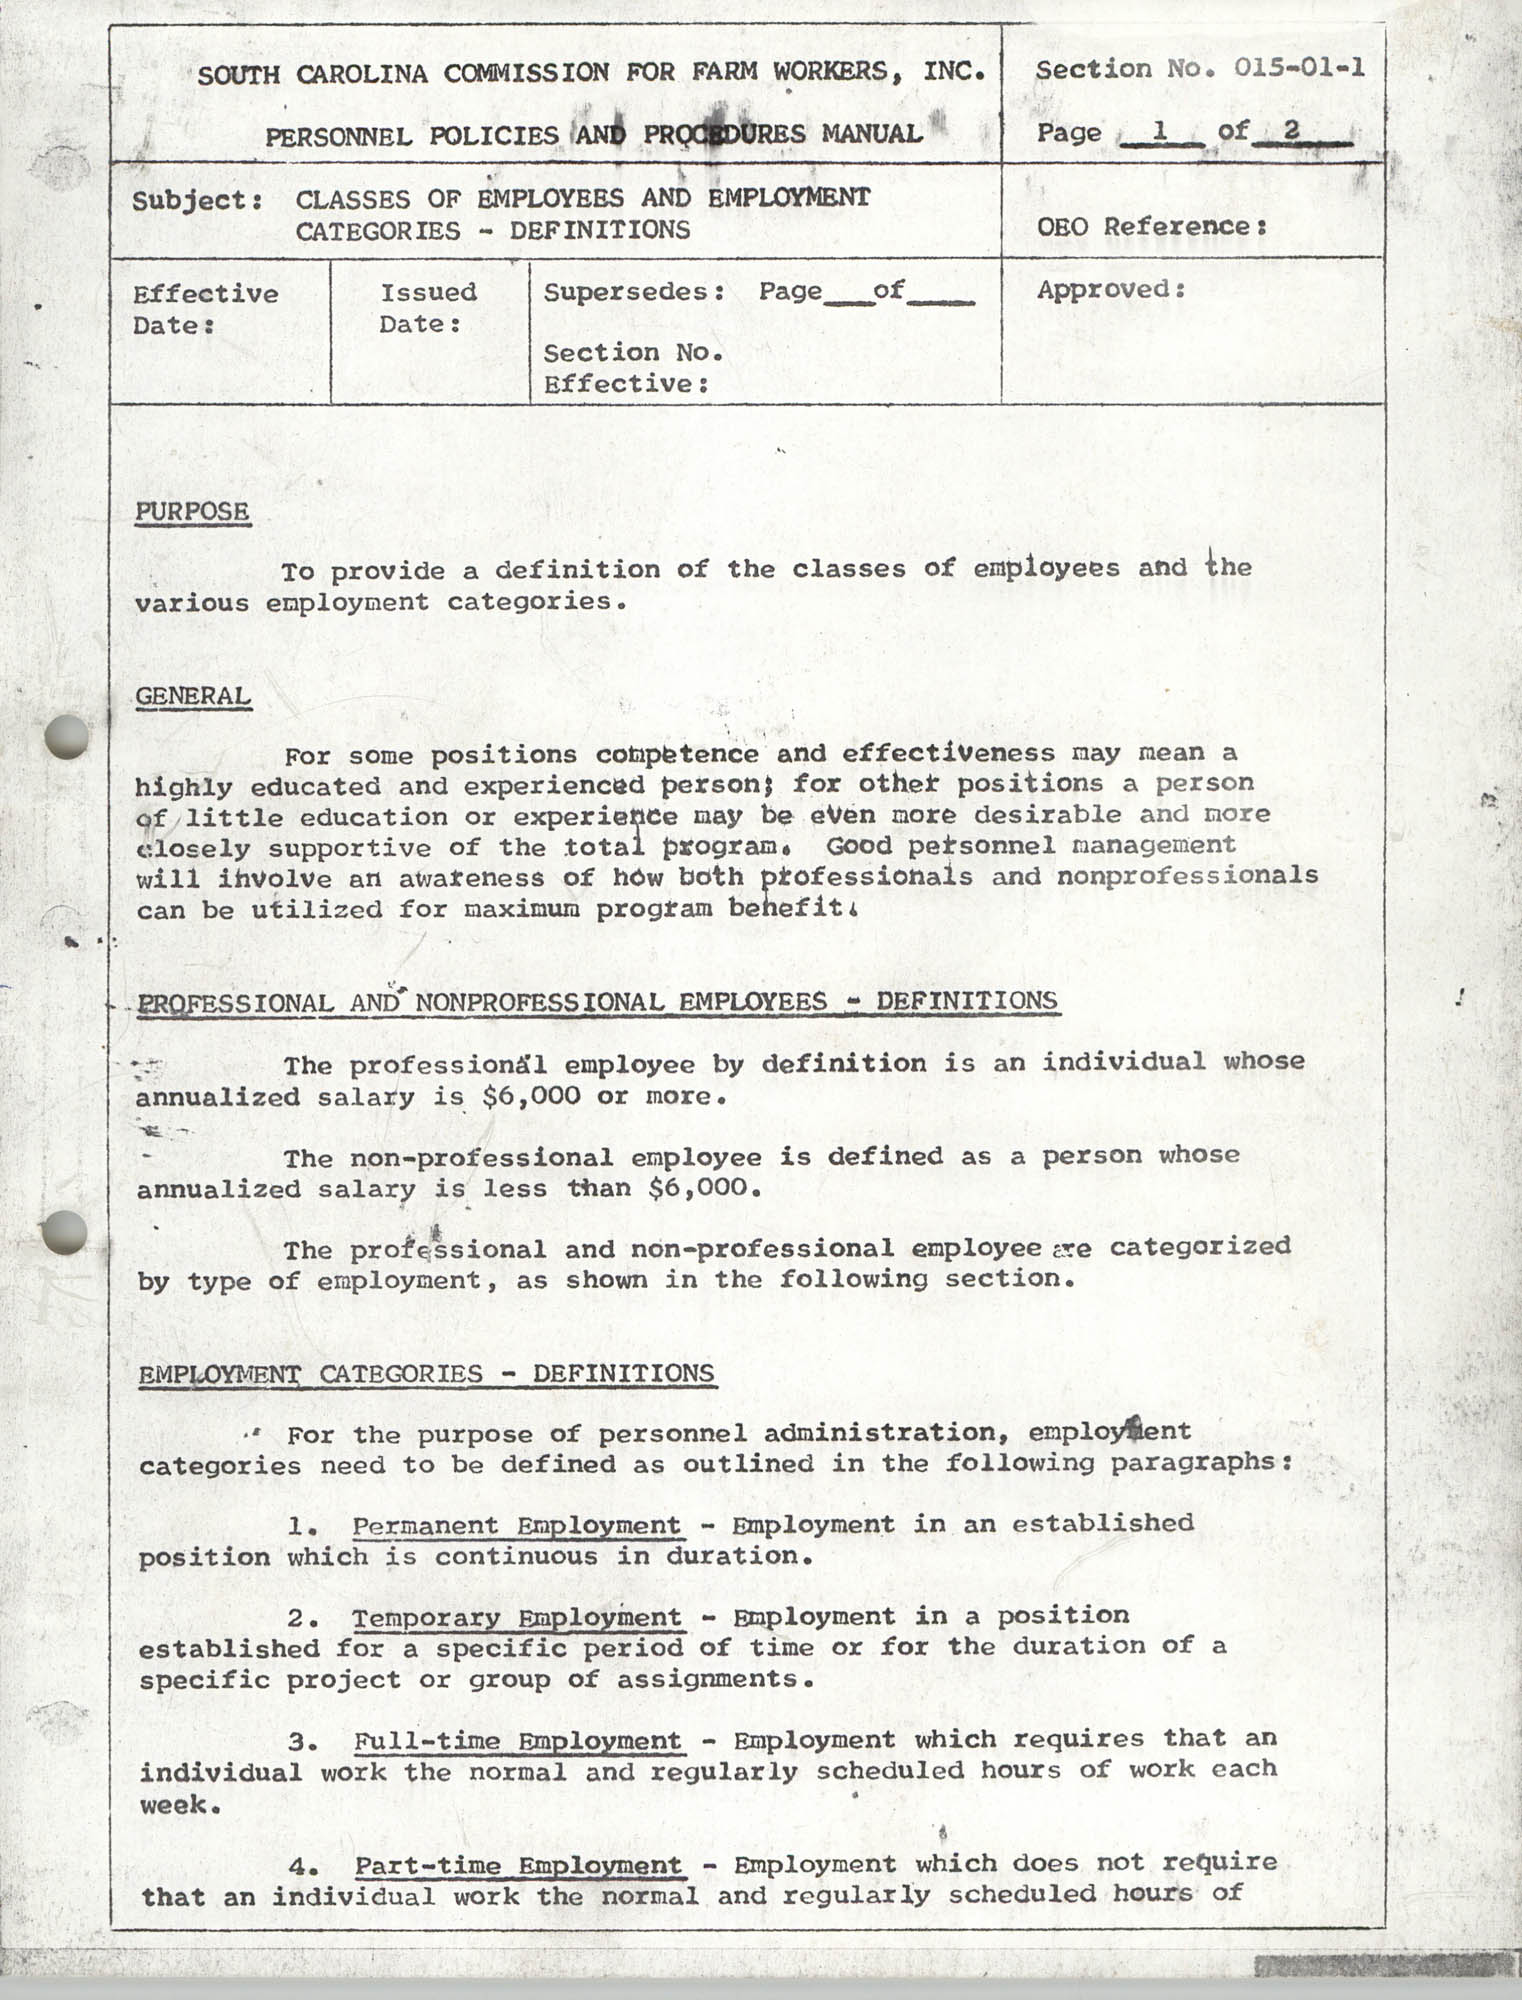 Personnel Policies and Procedures Manual, Section No. 015-01-1, Page 1